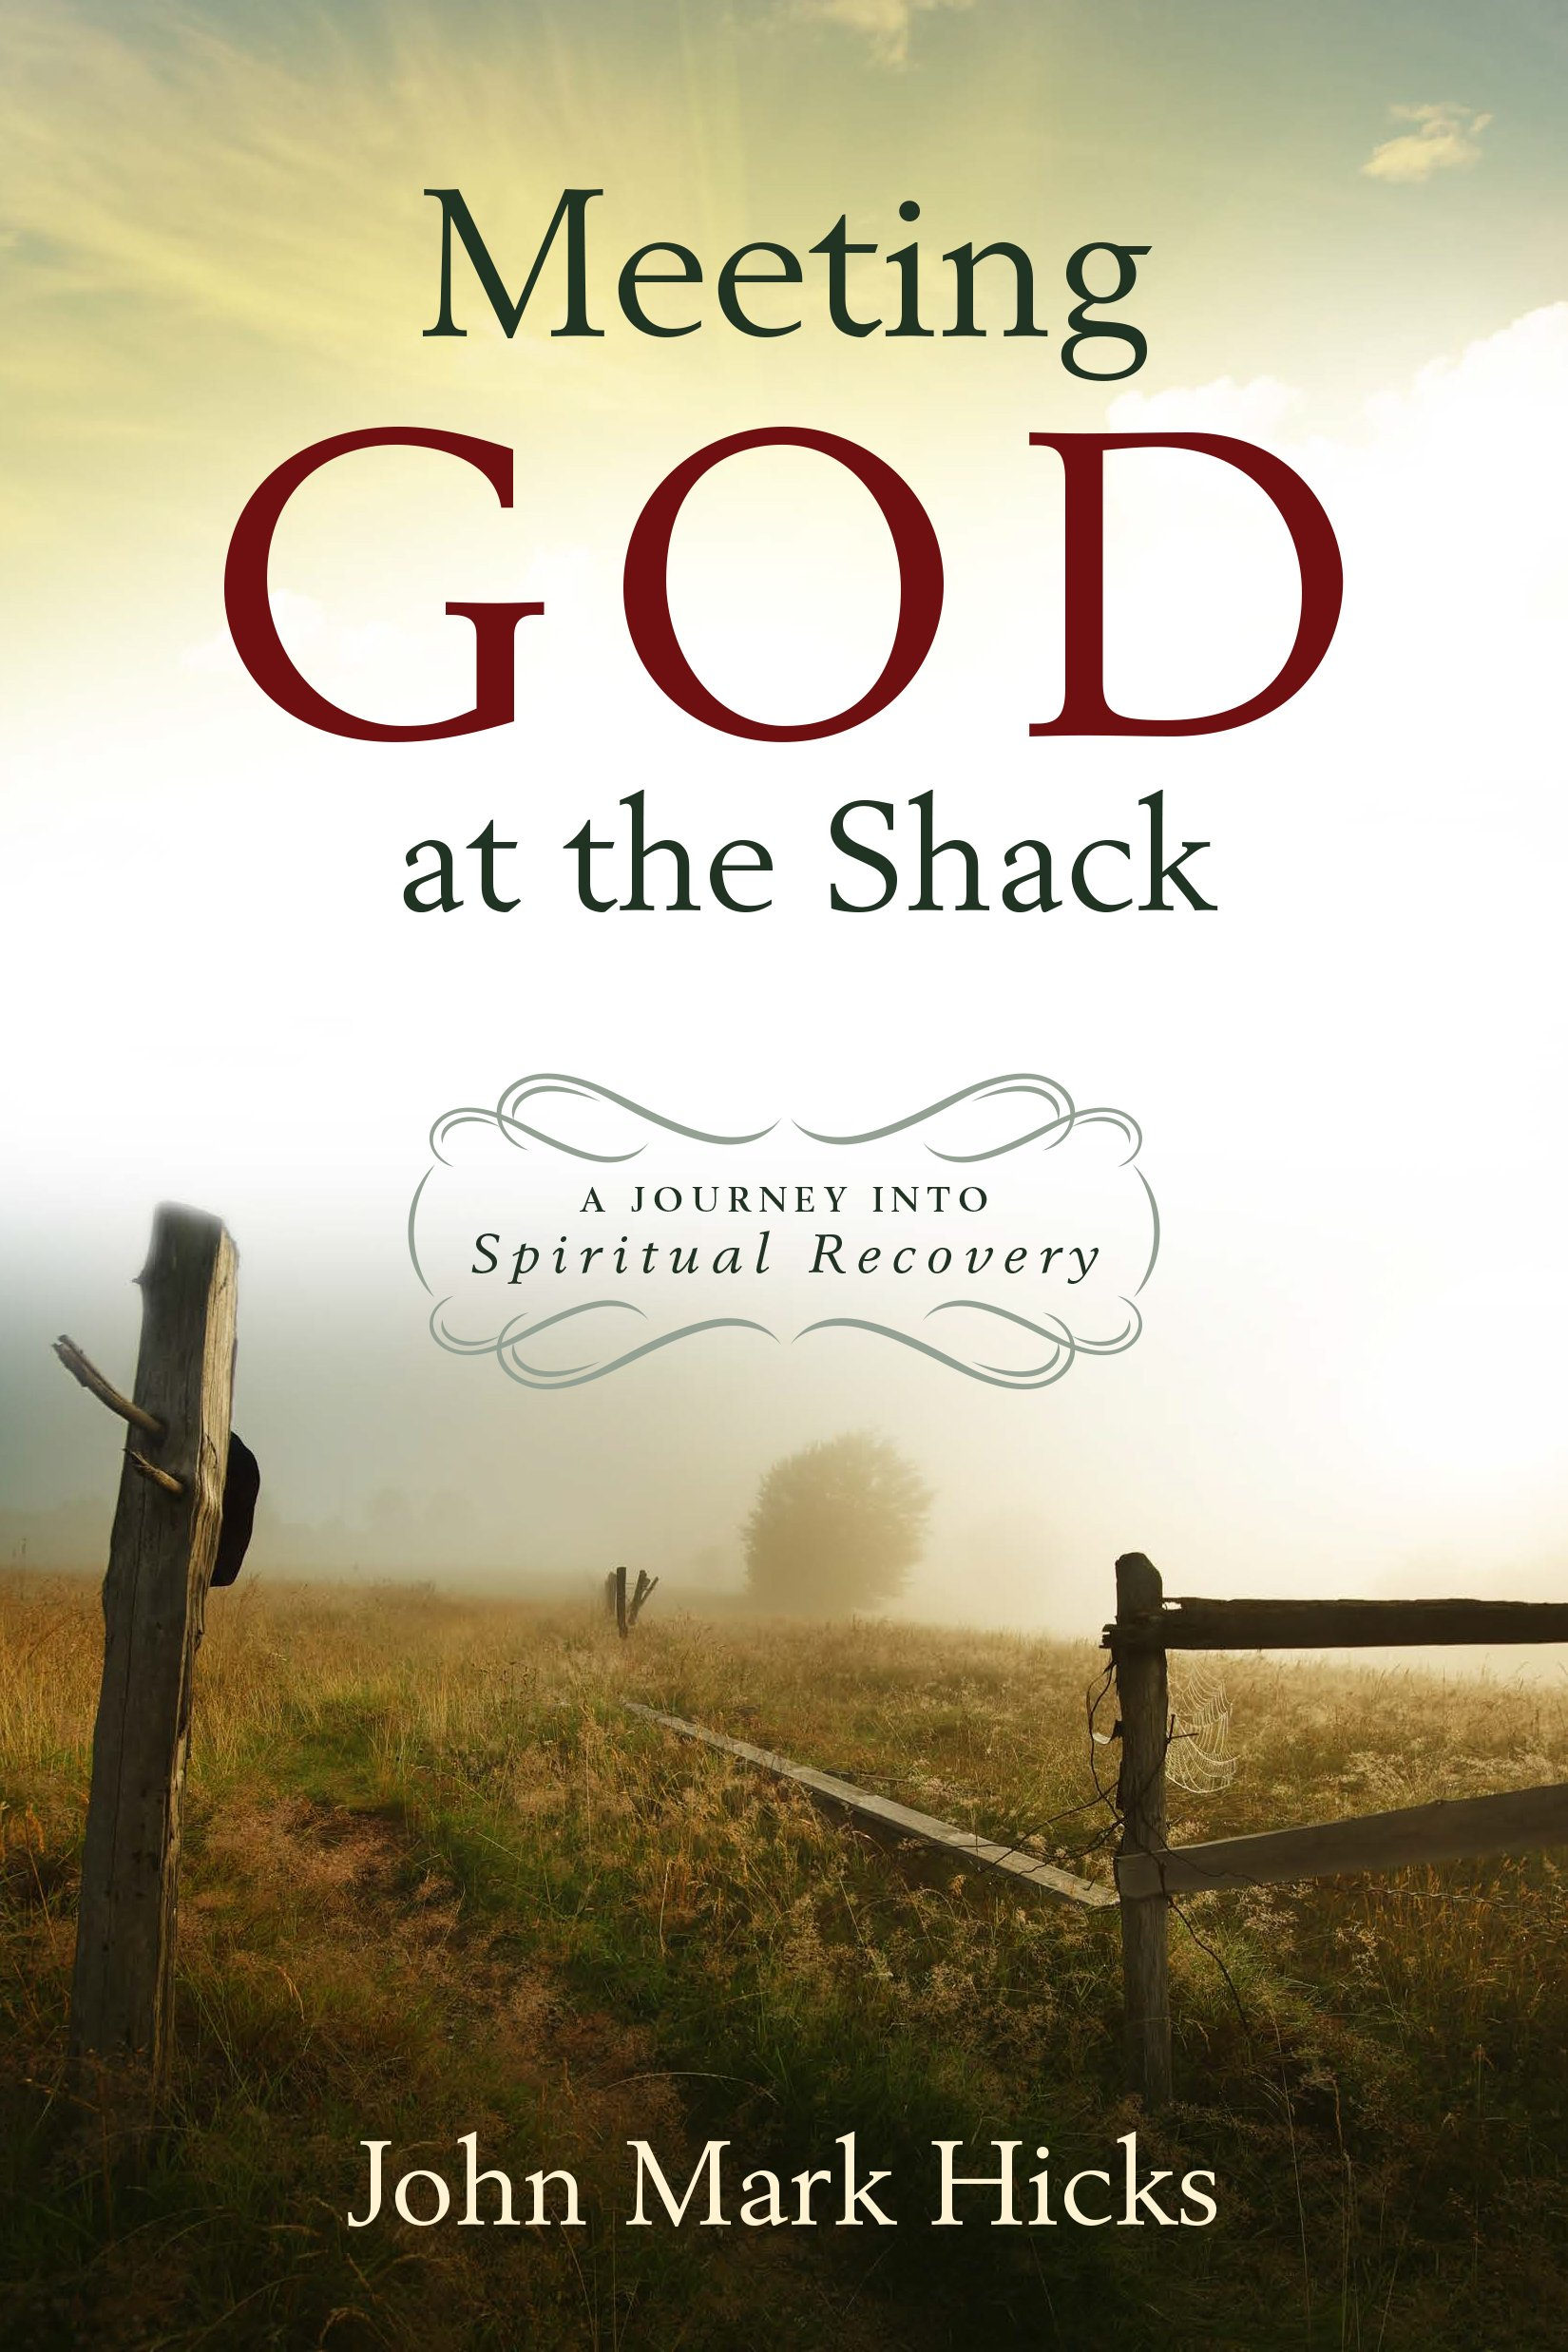 Meeting God at The Shack: A Journey Into Spiritual Recovery pdf